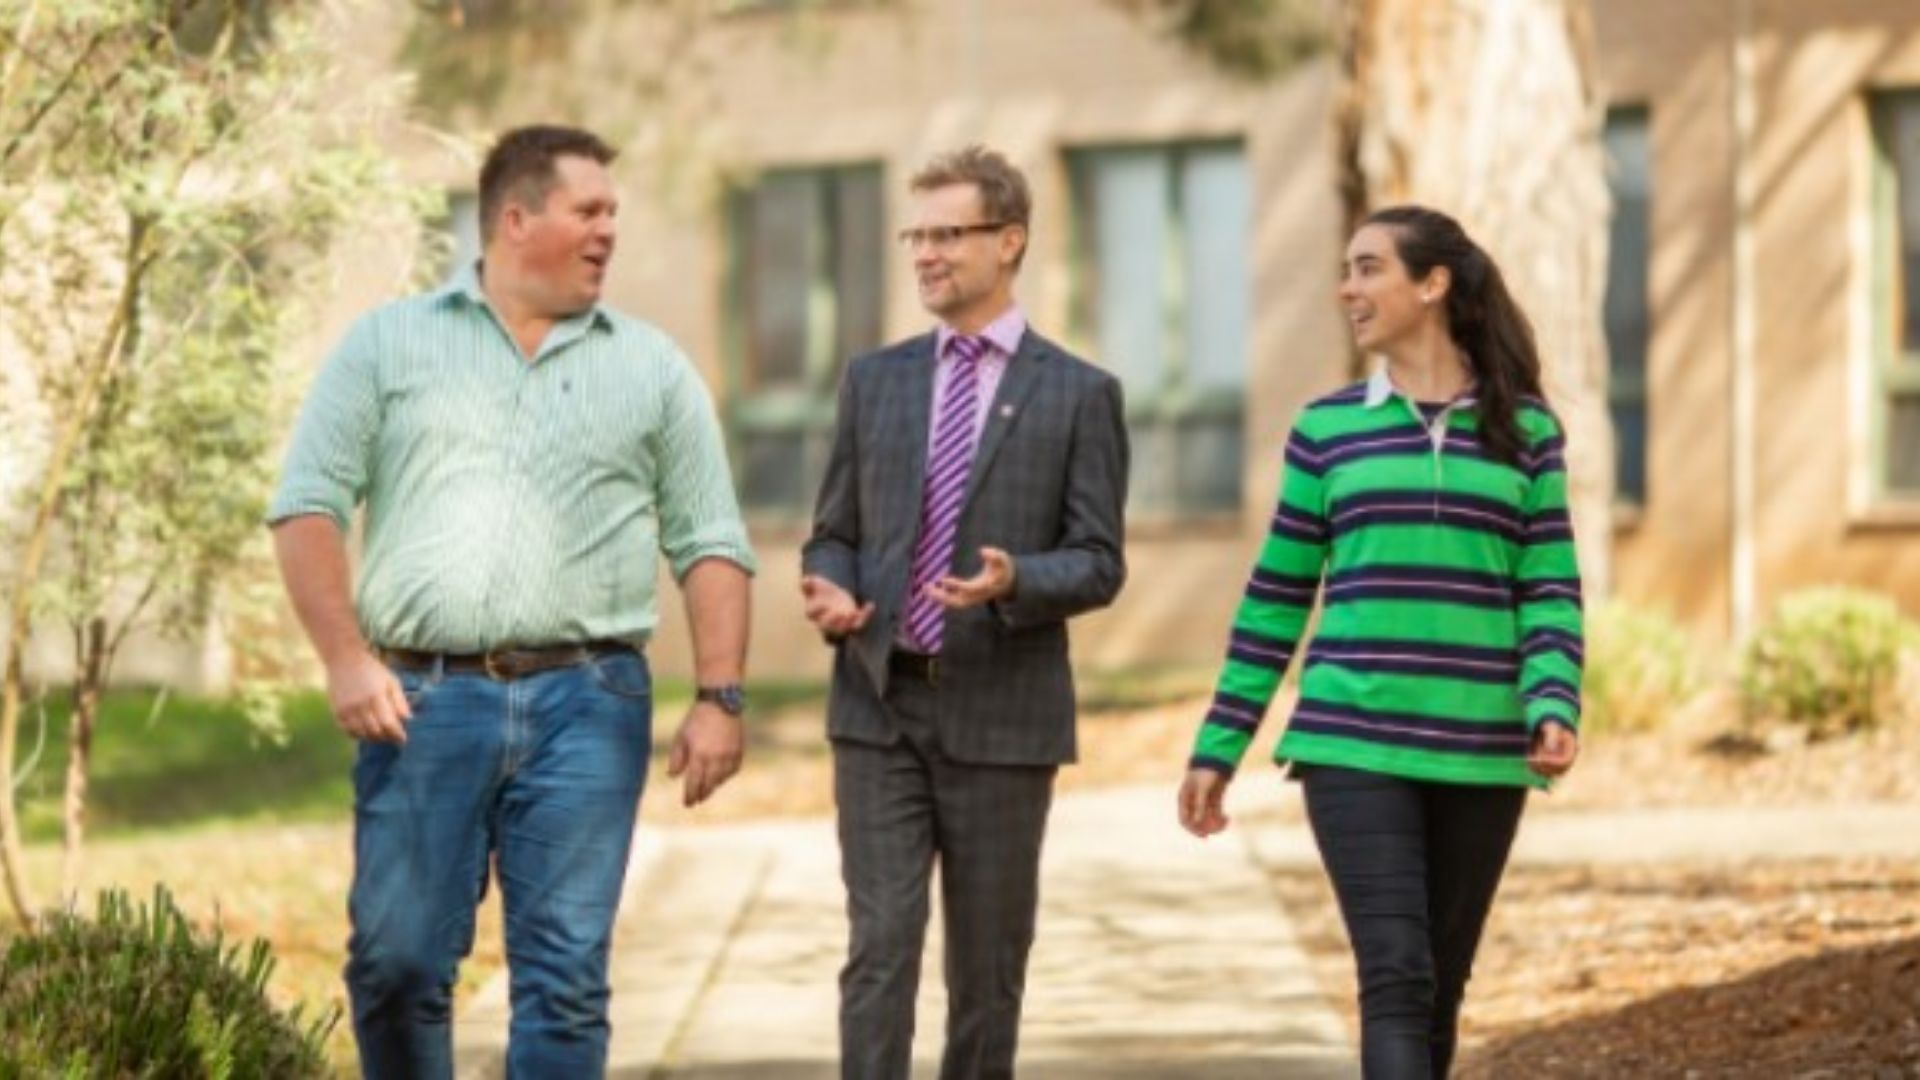 Charles Sturt alumni to reassure students about life after graduation